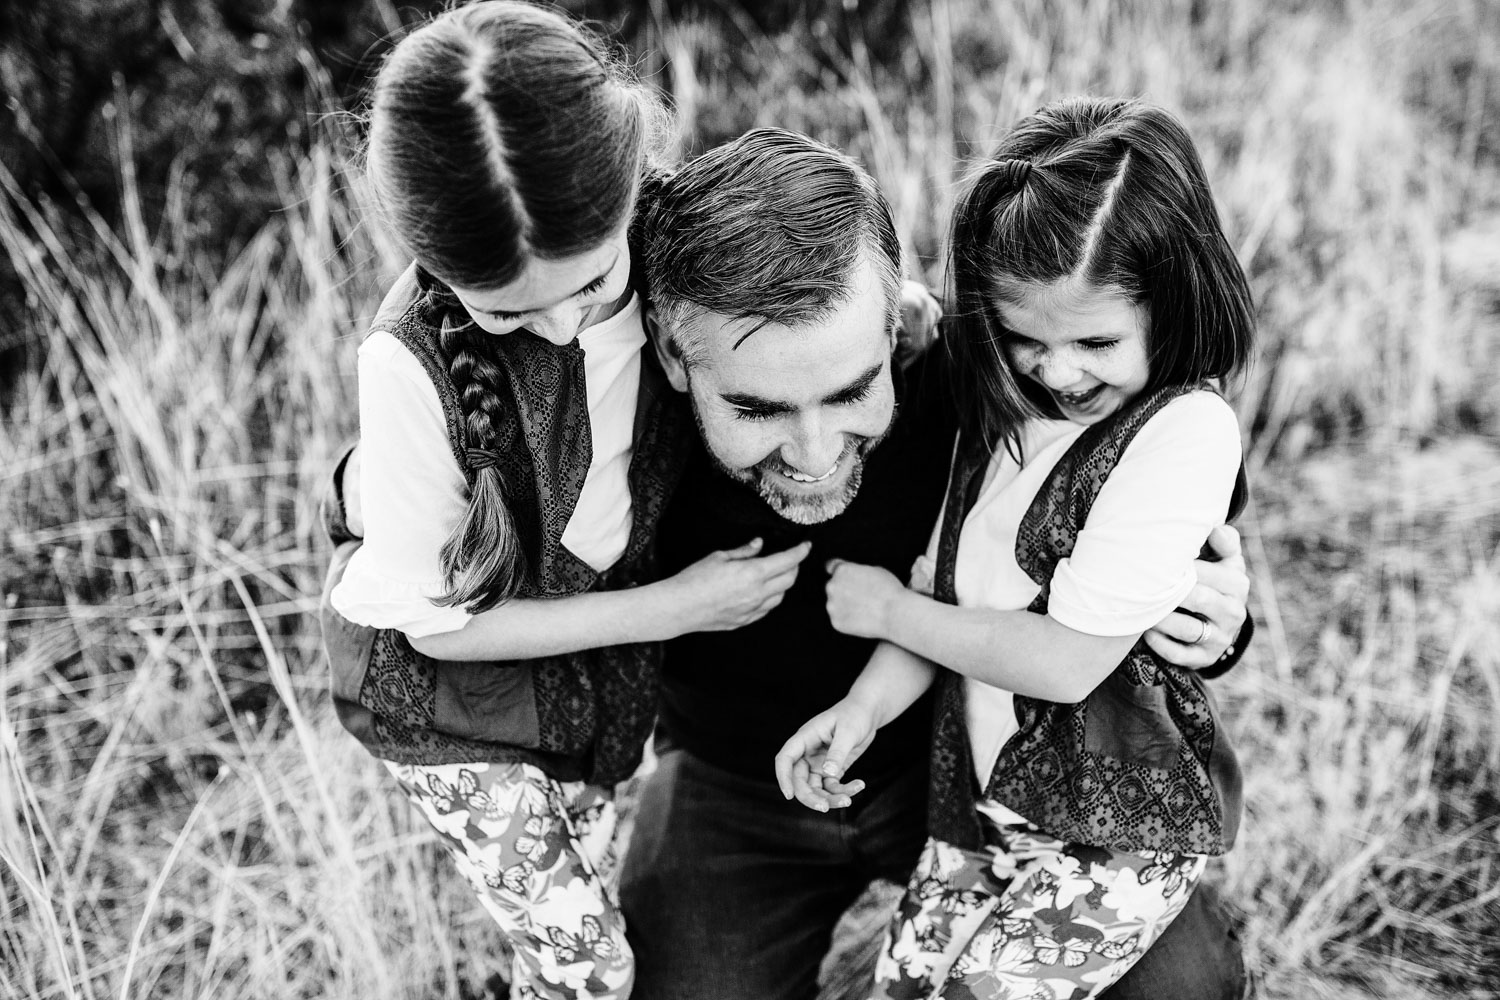 A dad lovingly plays with his two daughters during a fun family photo session with Amy Wright in Sacramento, California.